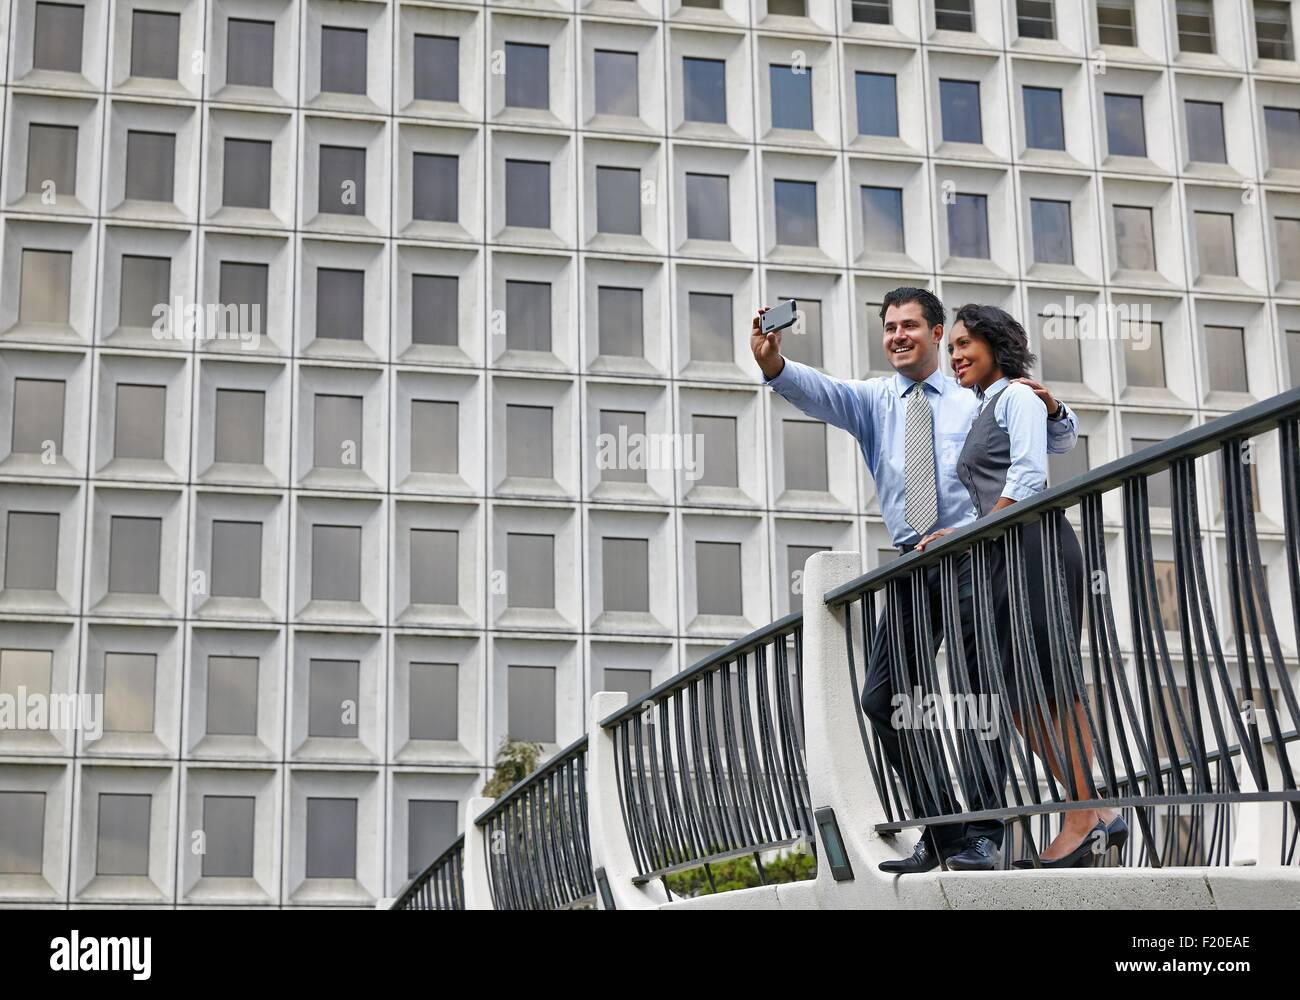 Business people standing behind railings in front of built structure, using smartphone to take selfie - Stock Image